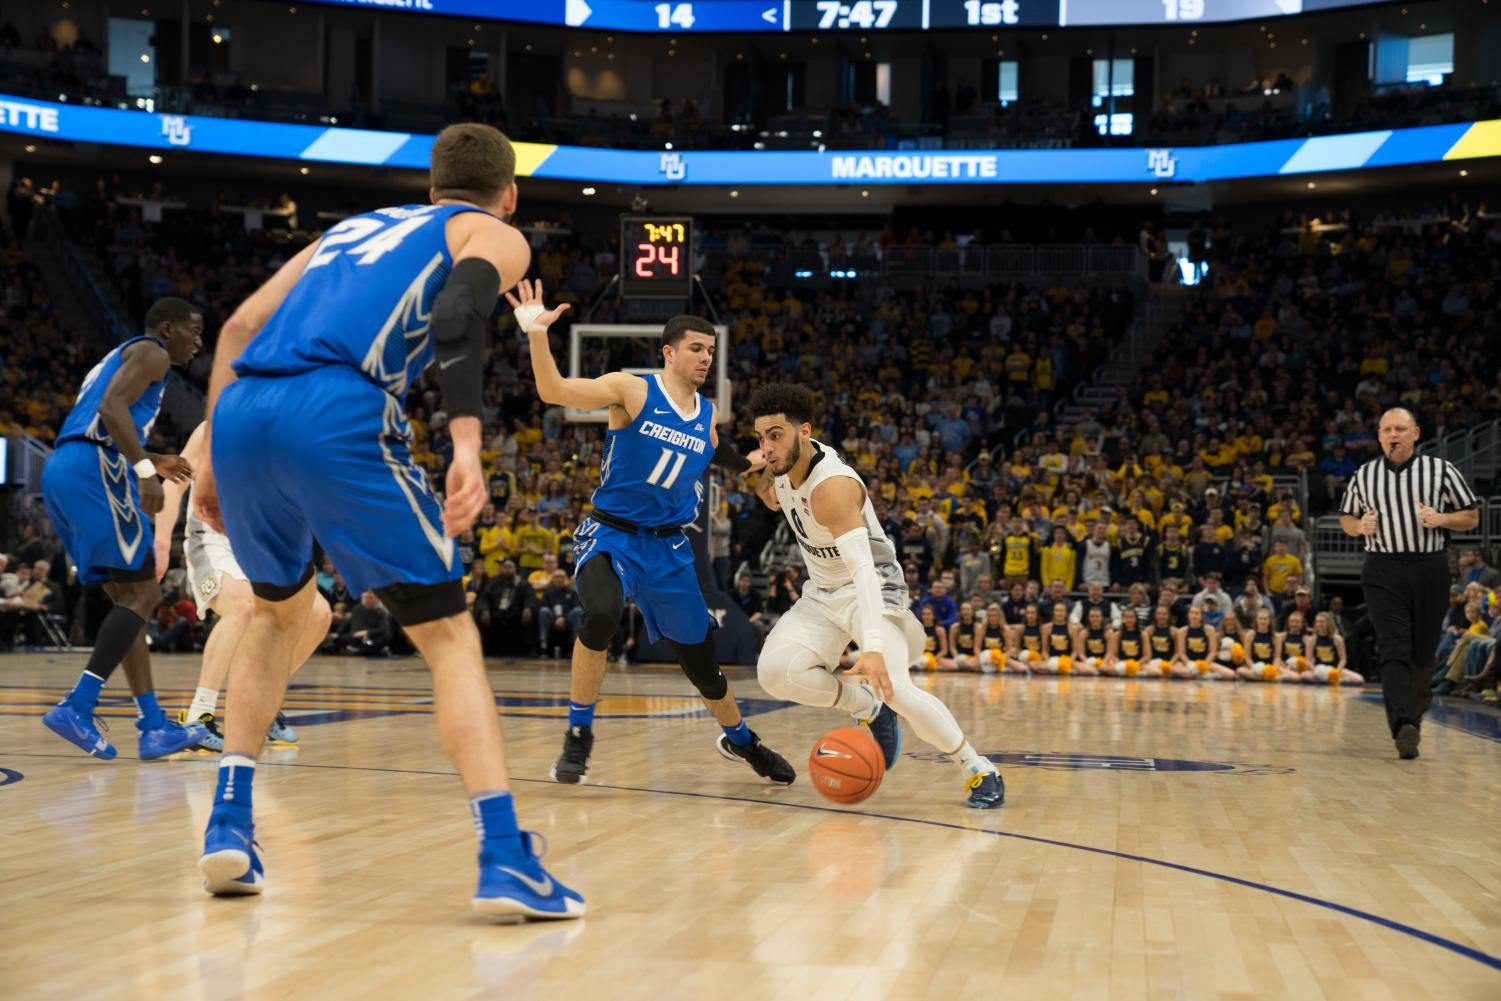 Markus Howard (0) guarded closely by Creighton's Marcus Zegarowski (11) in the Bluejay's 66-60 upset of the then-No. 10 Golden Eagles March 3 at Fiserv Forum.